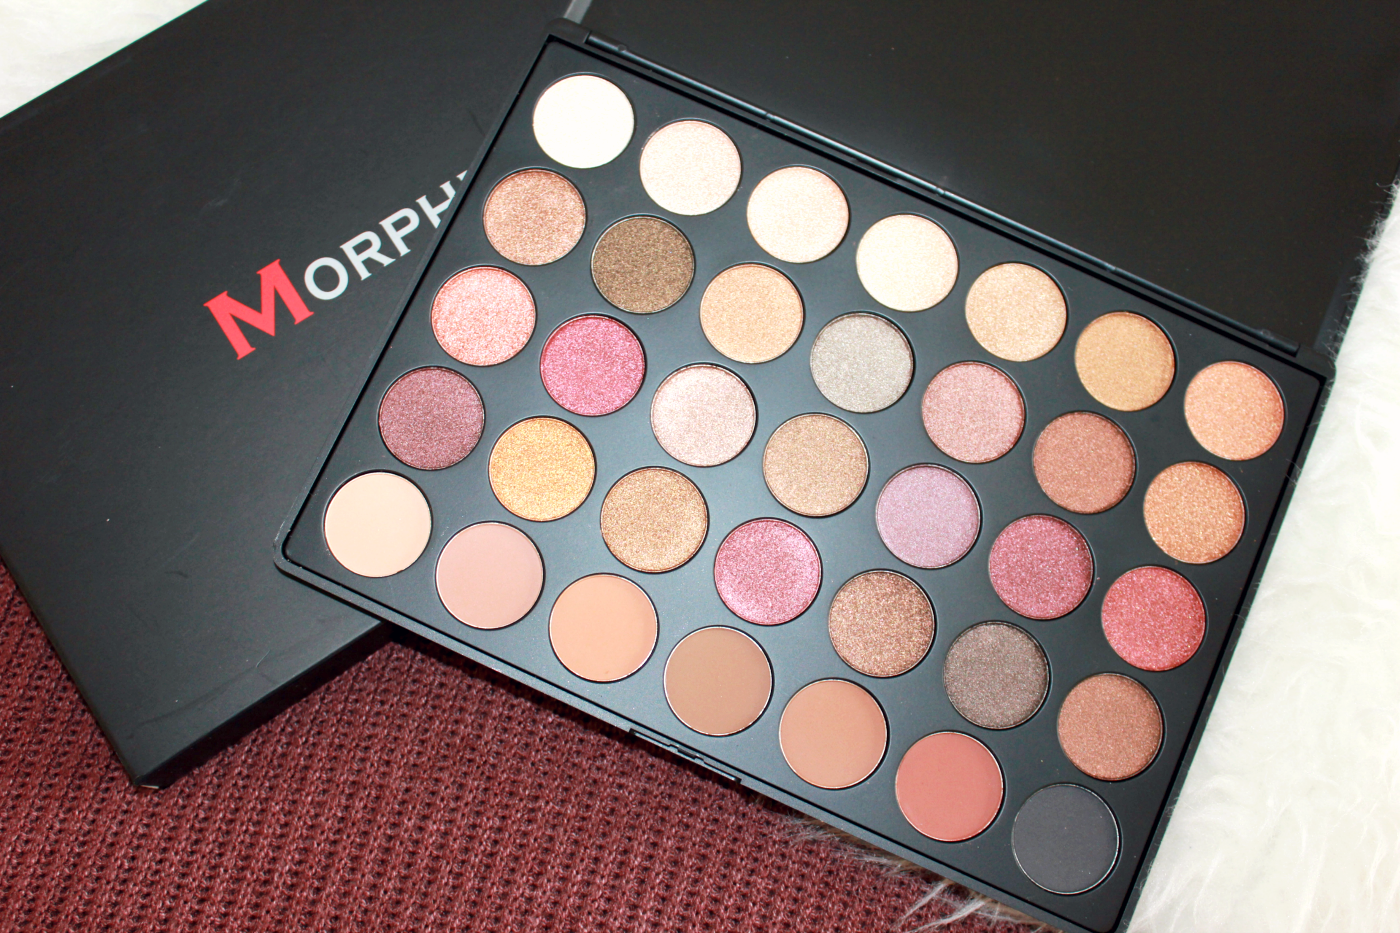 Morphe 35f eyeshadow palette review for Palette 34